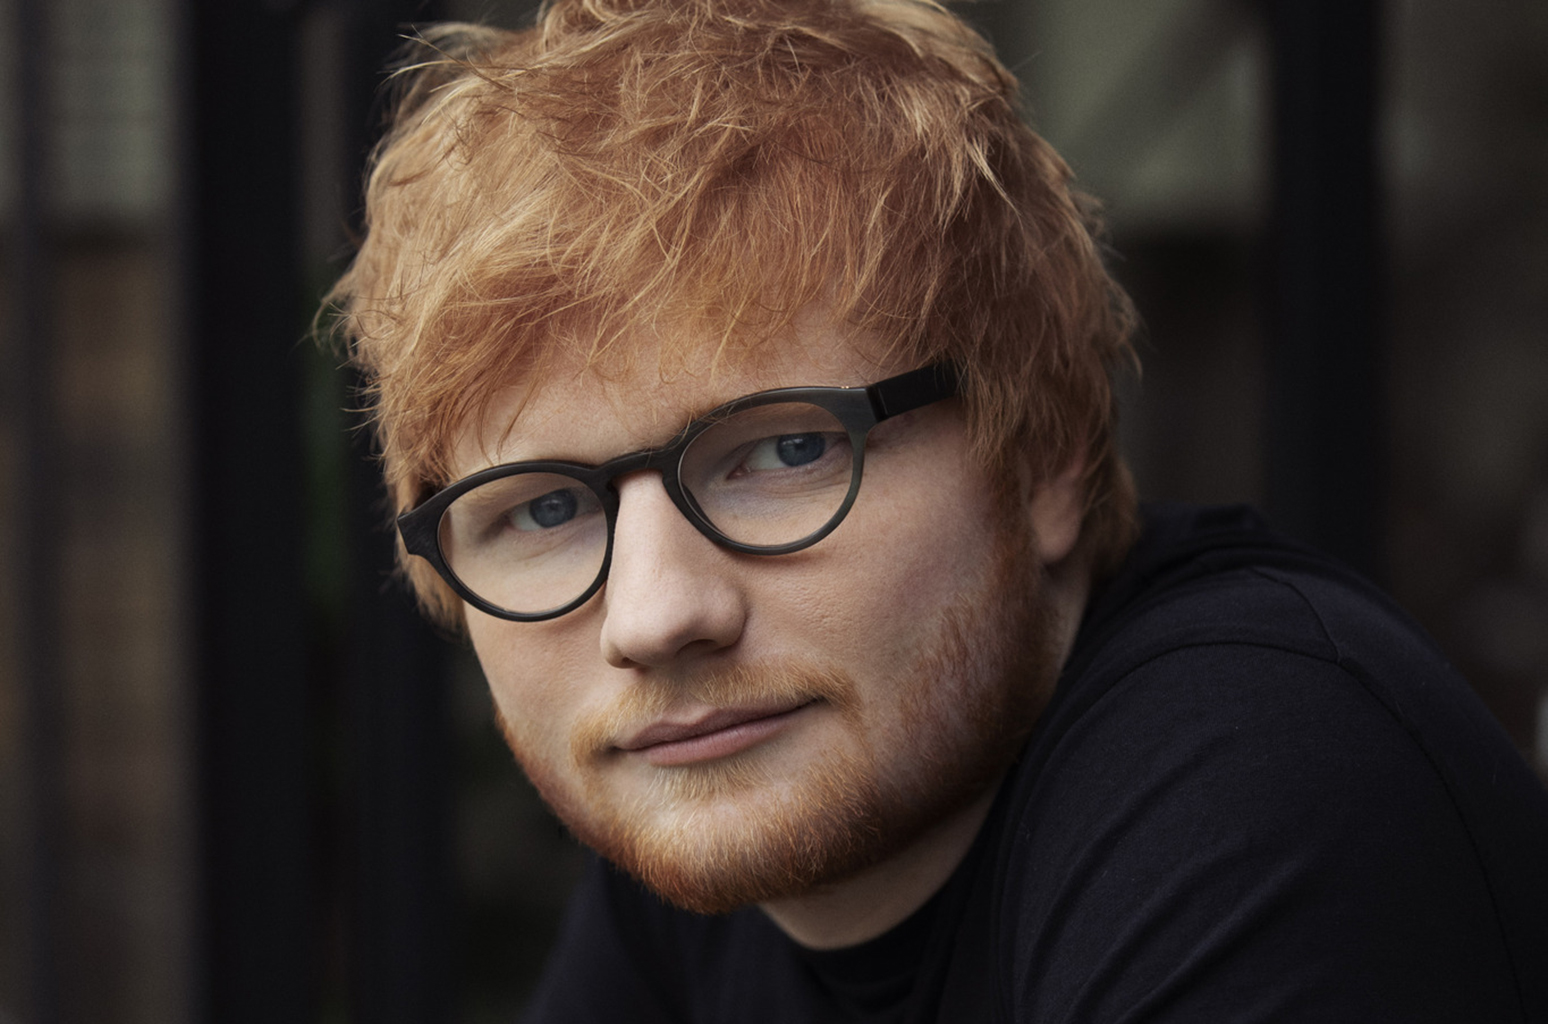 Pameran Galeri Ed Sheeran: Made In Suffolk Akan Hadir Di Ipswich